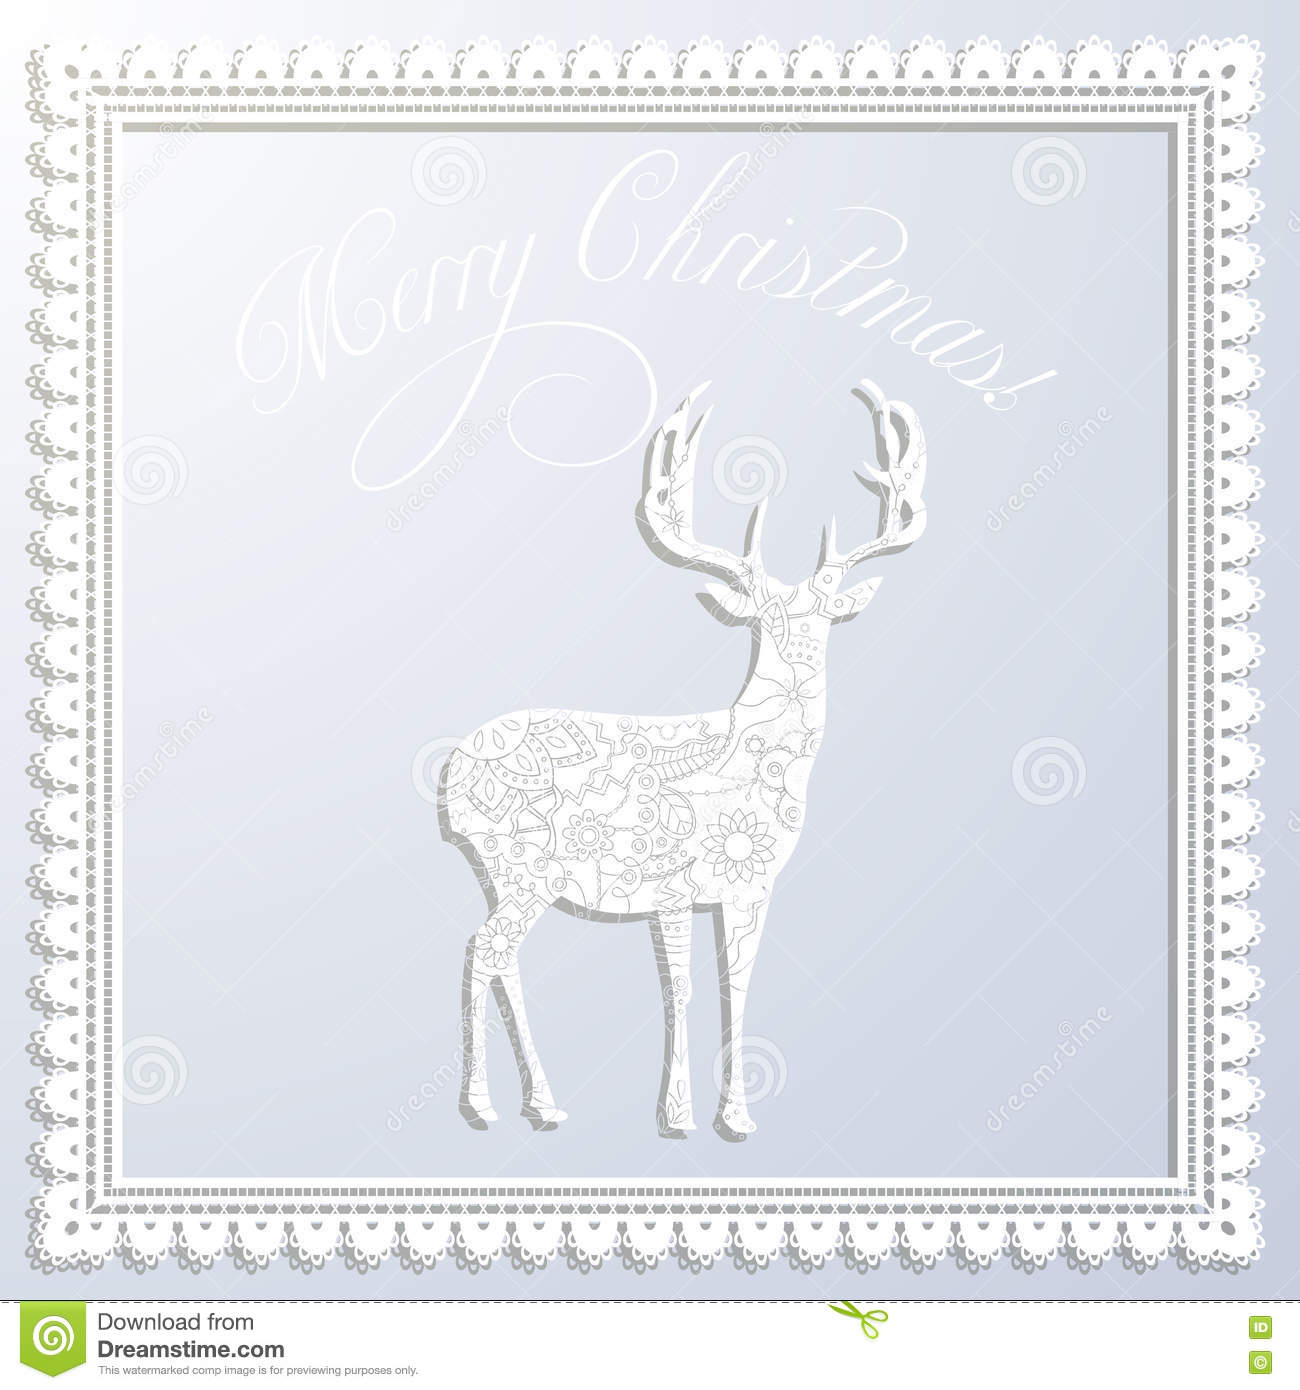 Merry Christmas White Paper Card With Applique Deer And Frame Stock ...